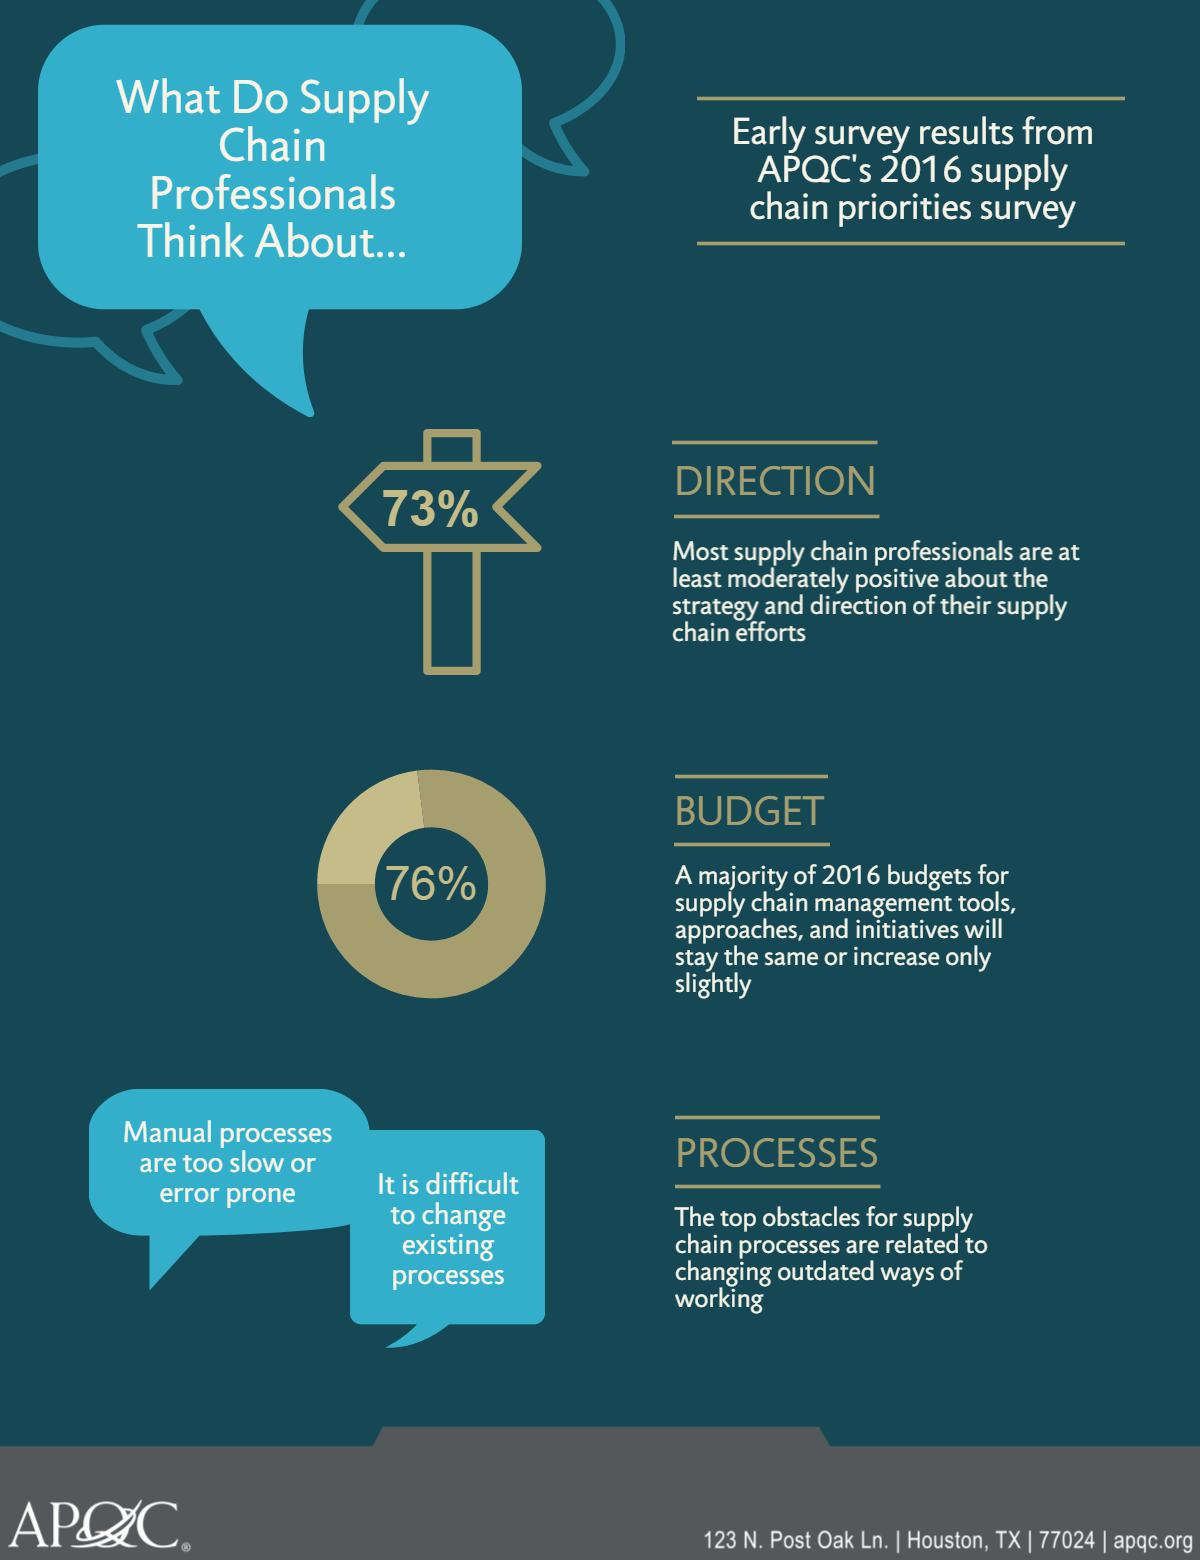 Early survey results from APQC's 2016 supply chain priorities survey